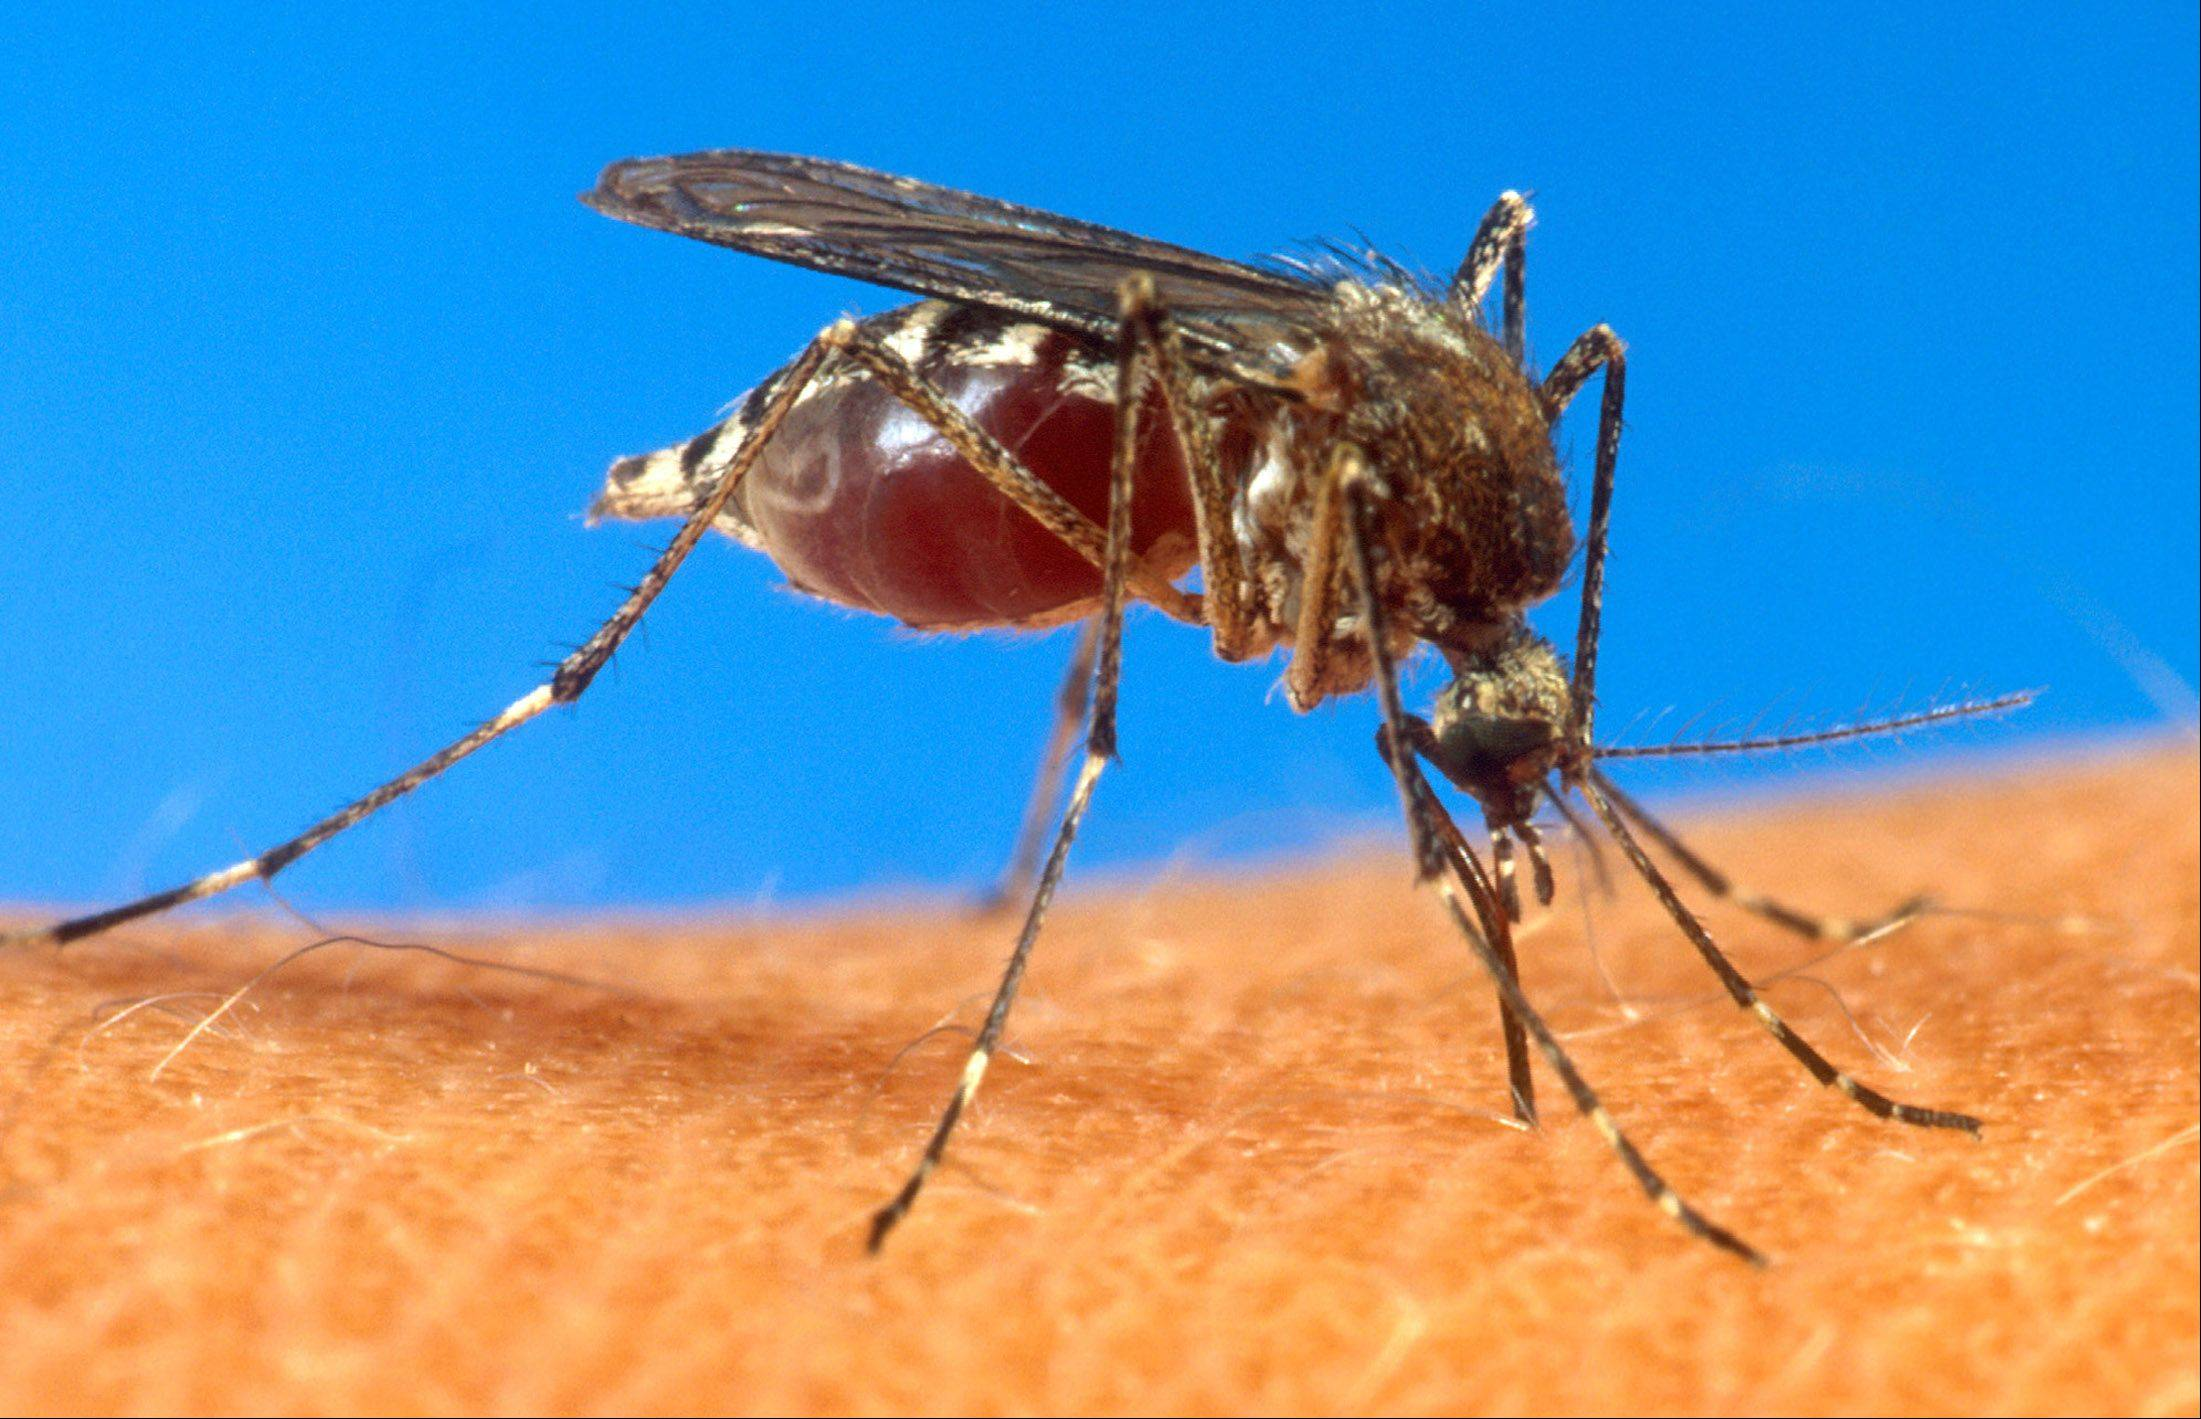 The first mosquitoes of the season to test positive for the West Nile virus in DuPage County were found this week in Lemont.